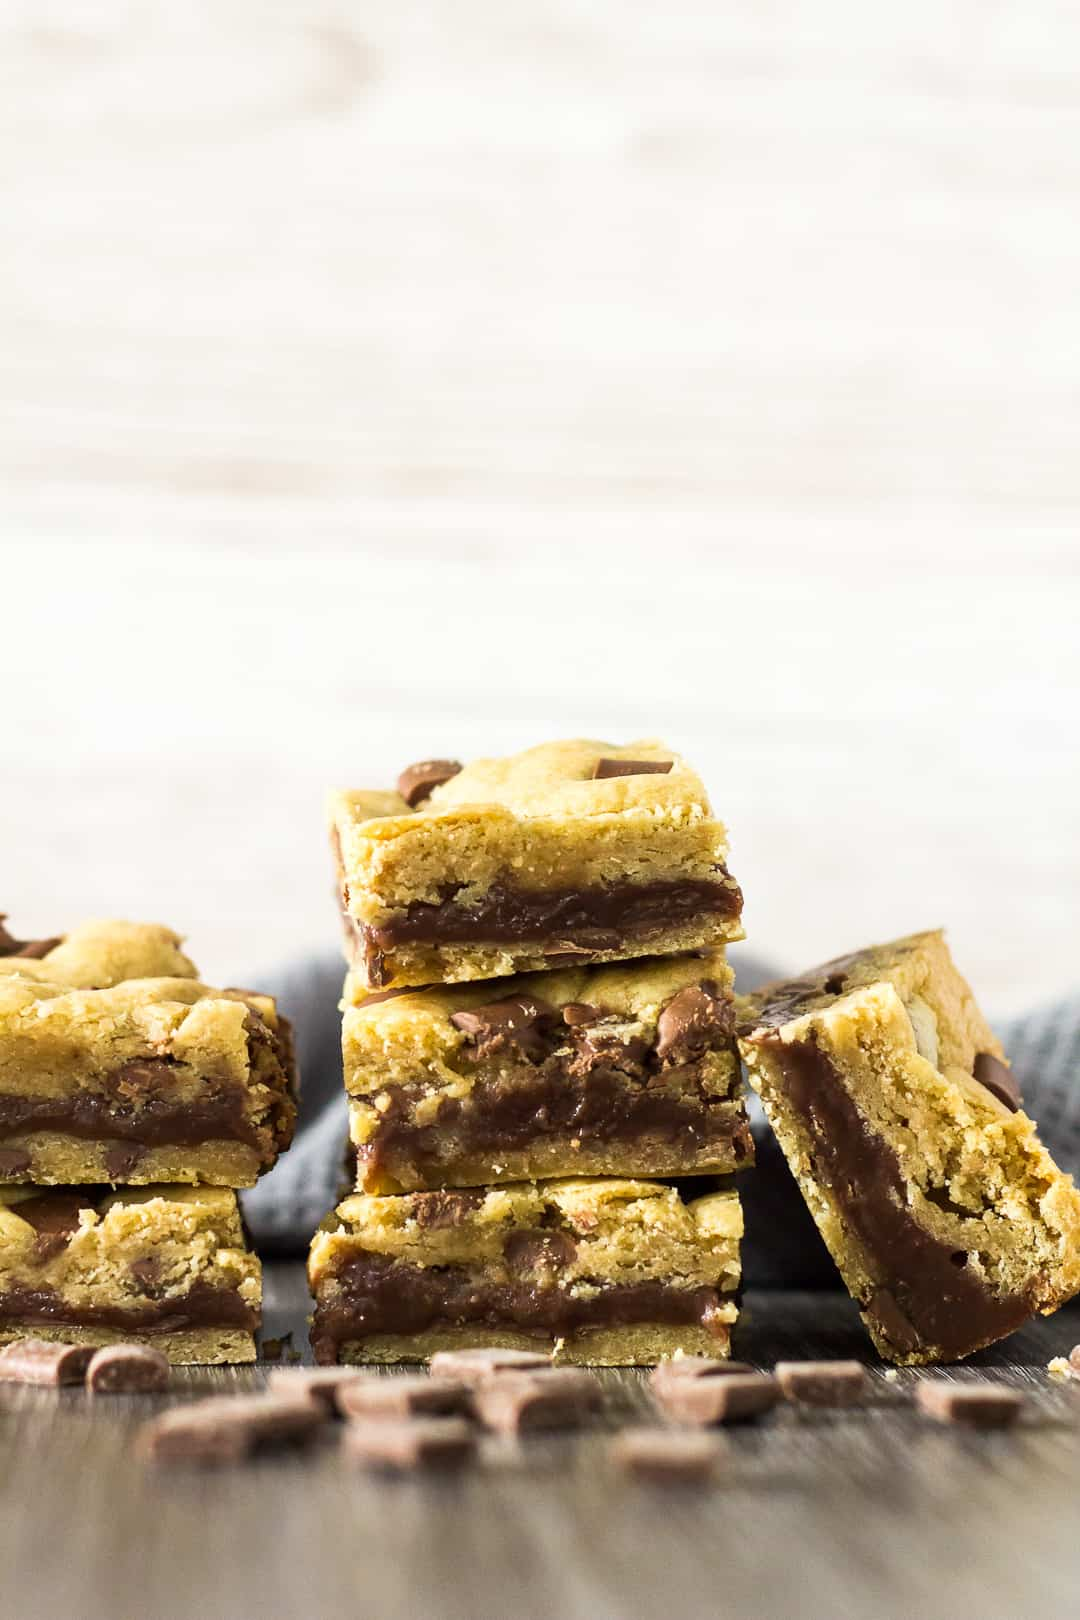 A sideview of Fudge Stuffed Chocolate Chip Cookie Bars stacked on top of each other.